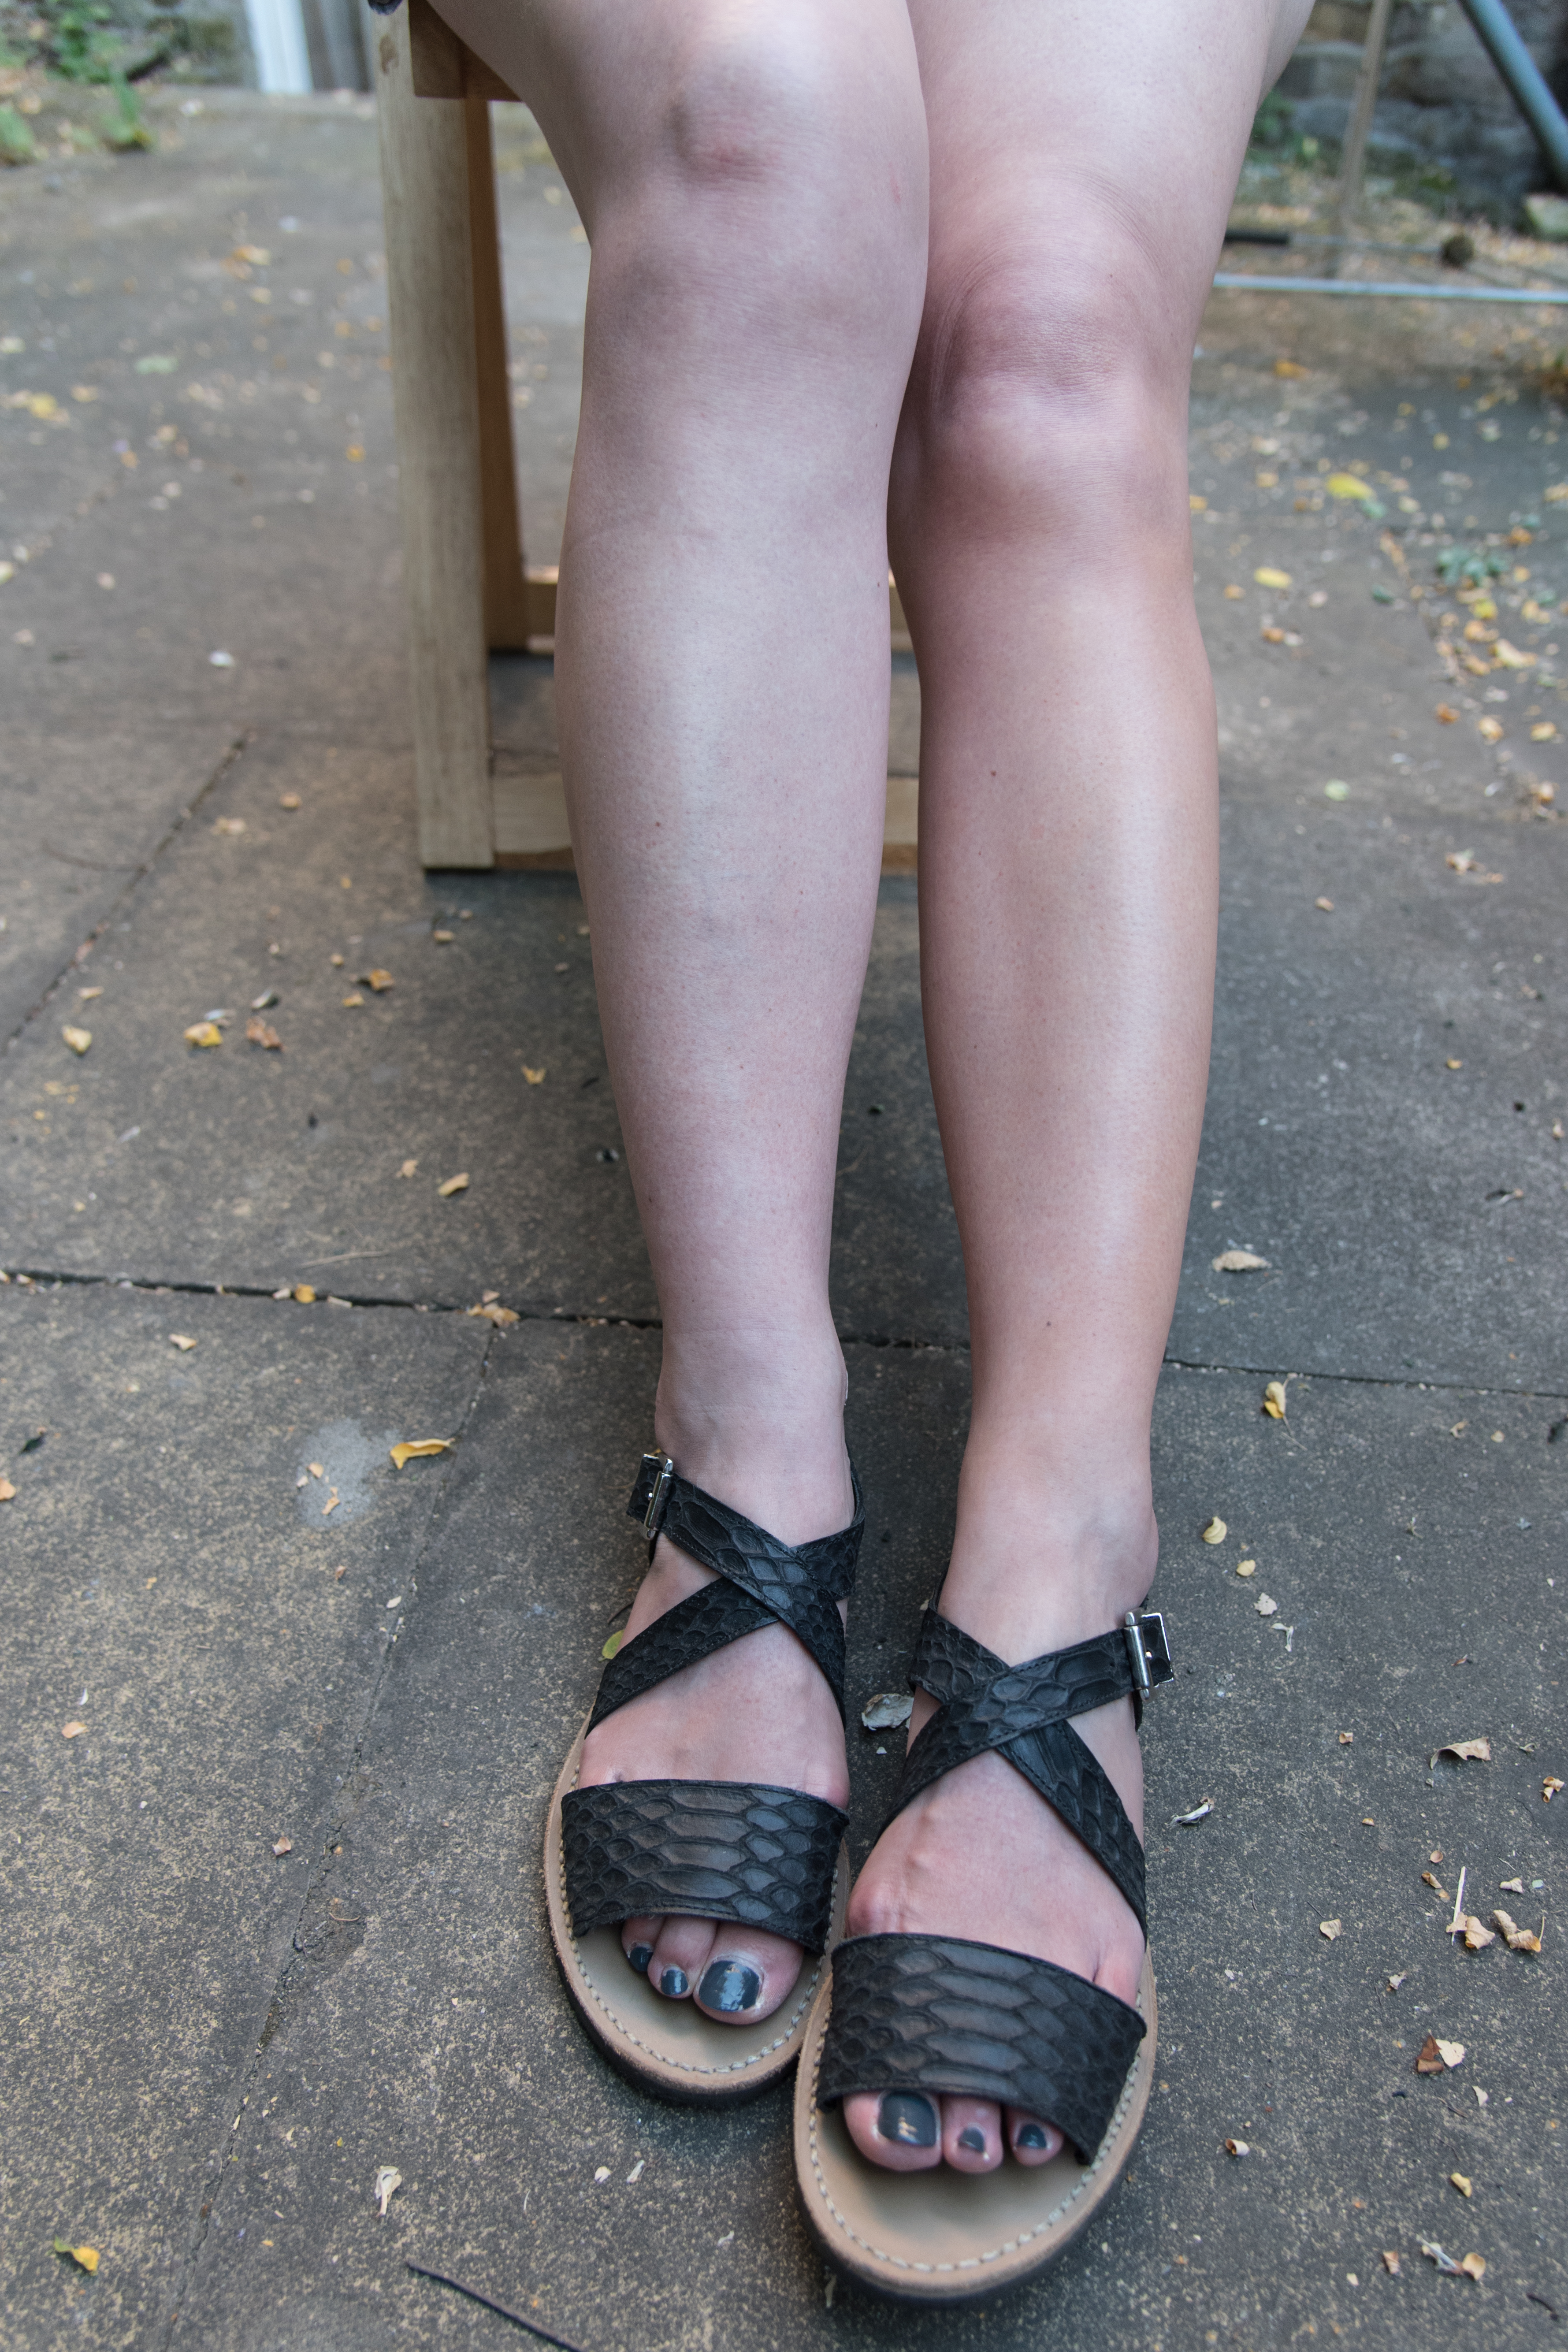 Picture of Sarah's legs, one wearing Alleven, one not